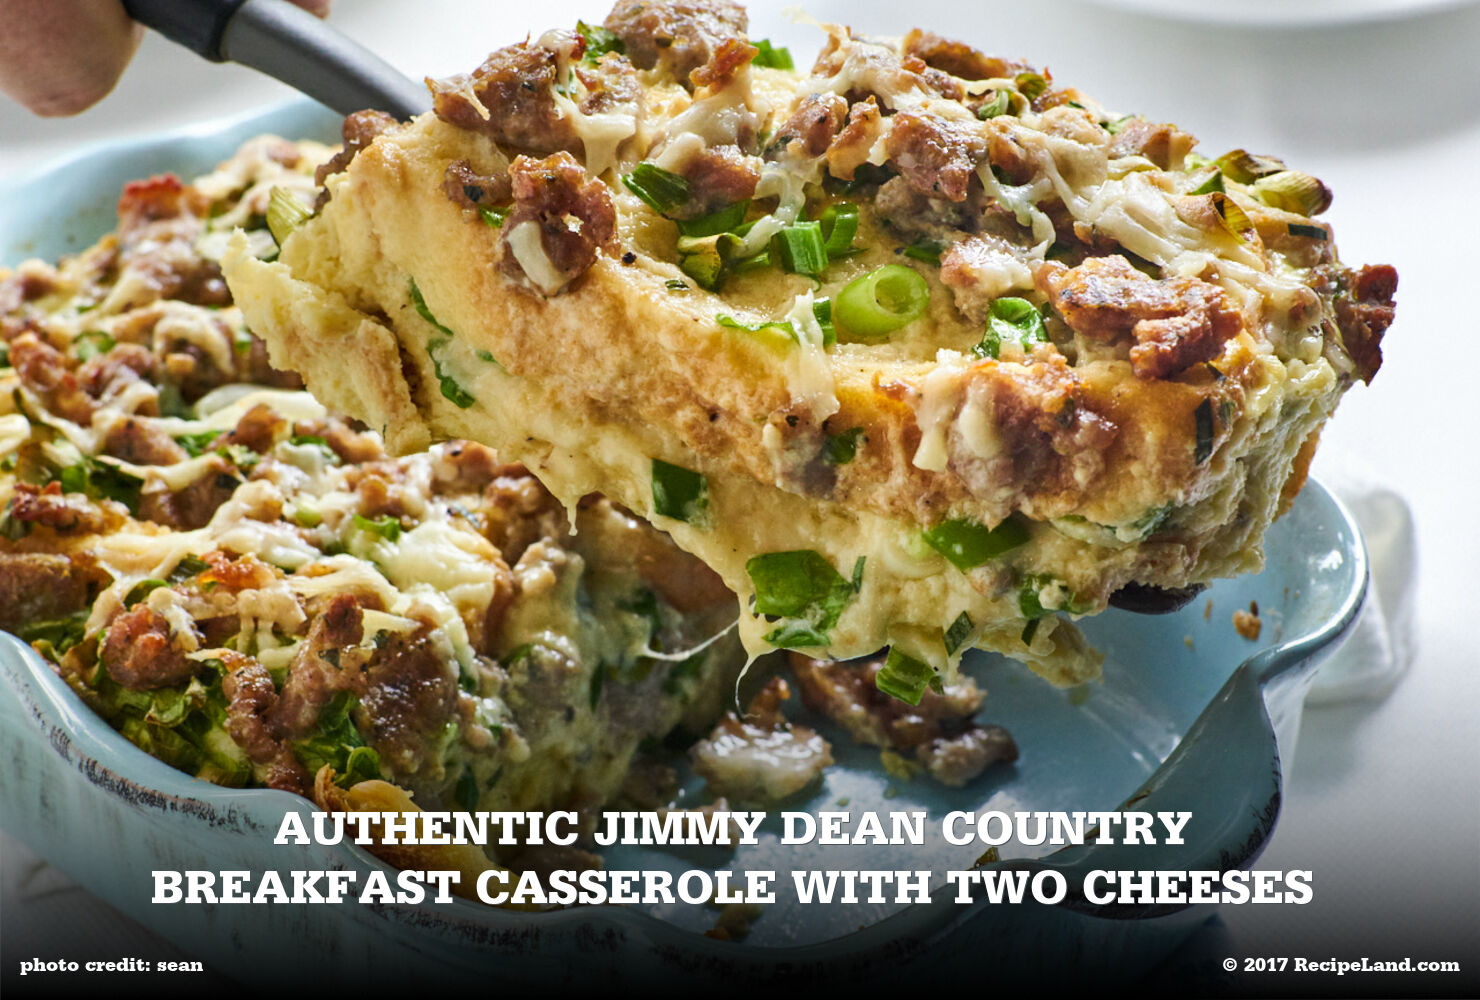 Authentic Jimmy Dean Country Breakfast Casserole with Two Cheeses